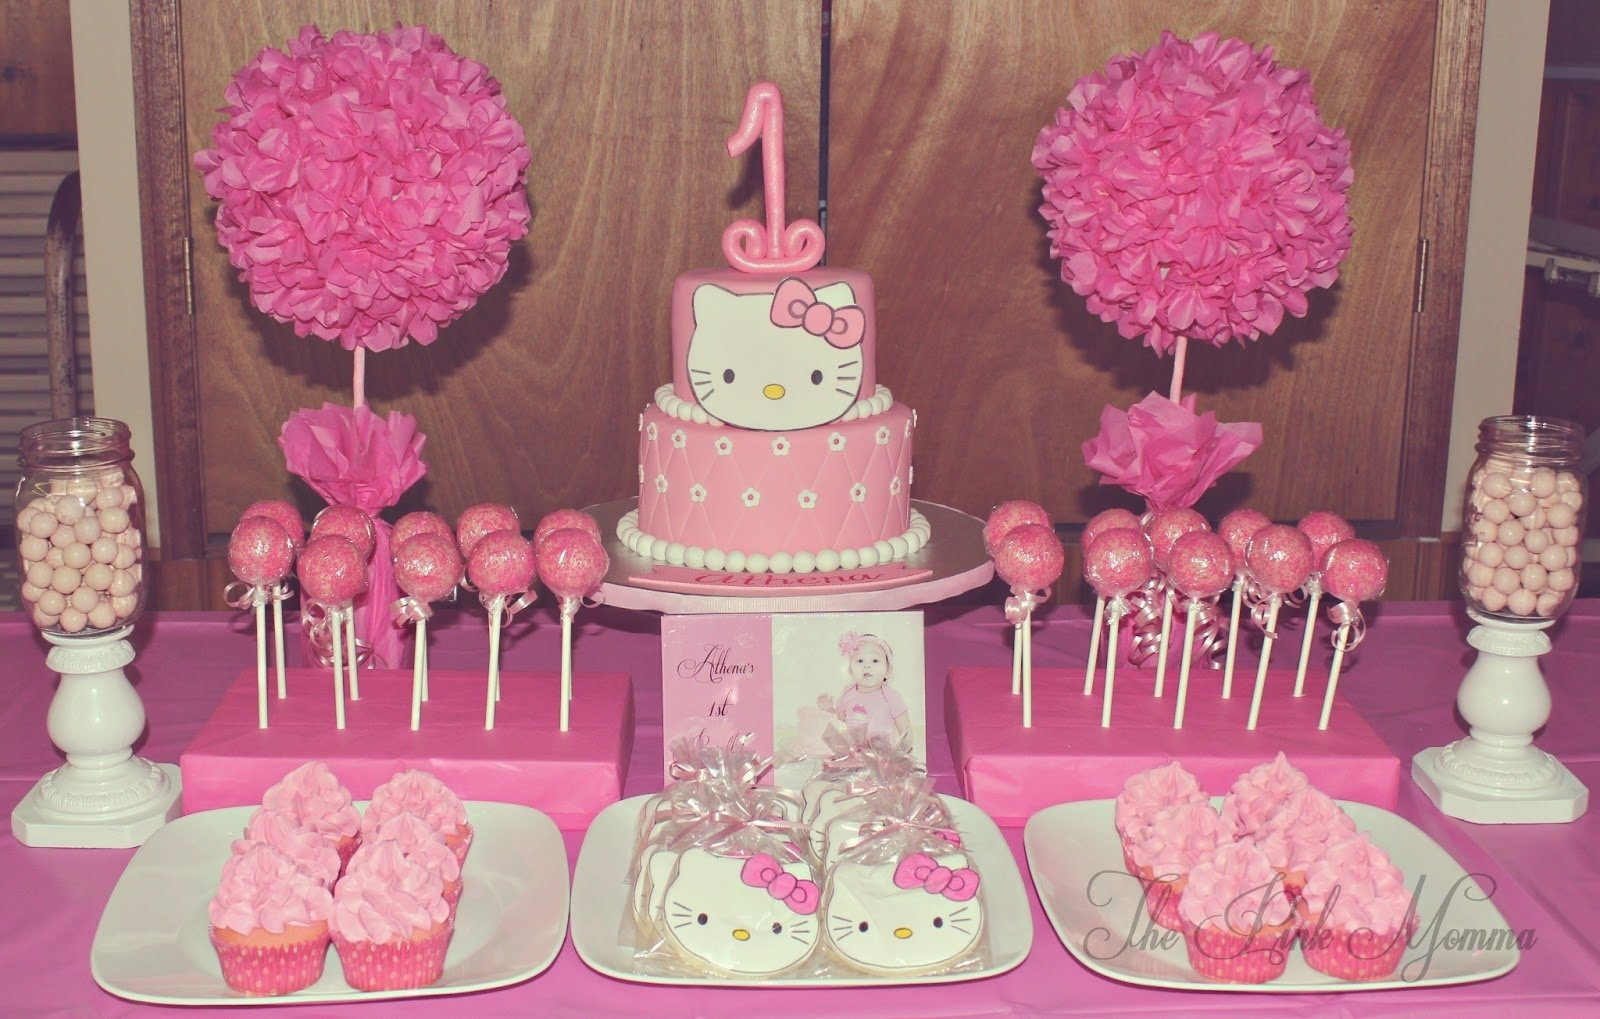 hello kitty party decorations ideas : cute hello kitty party